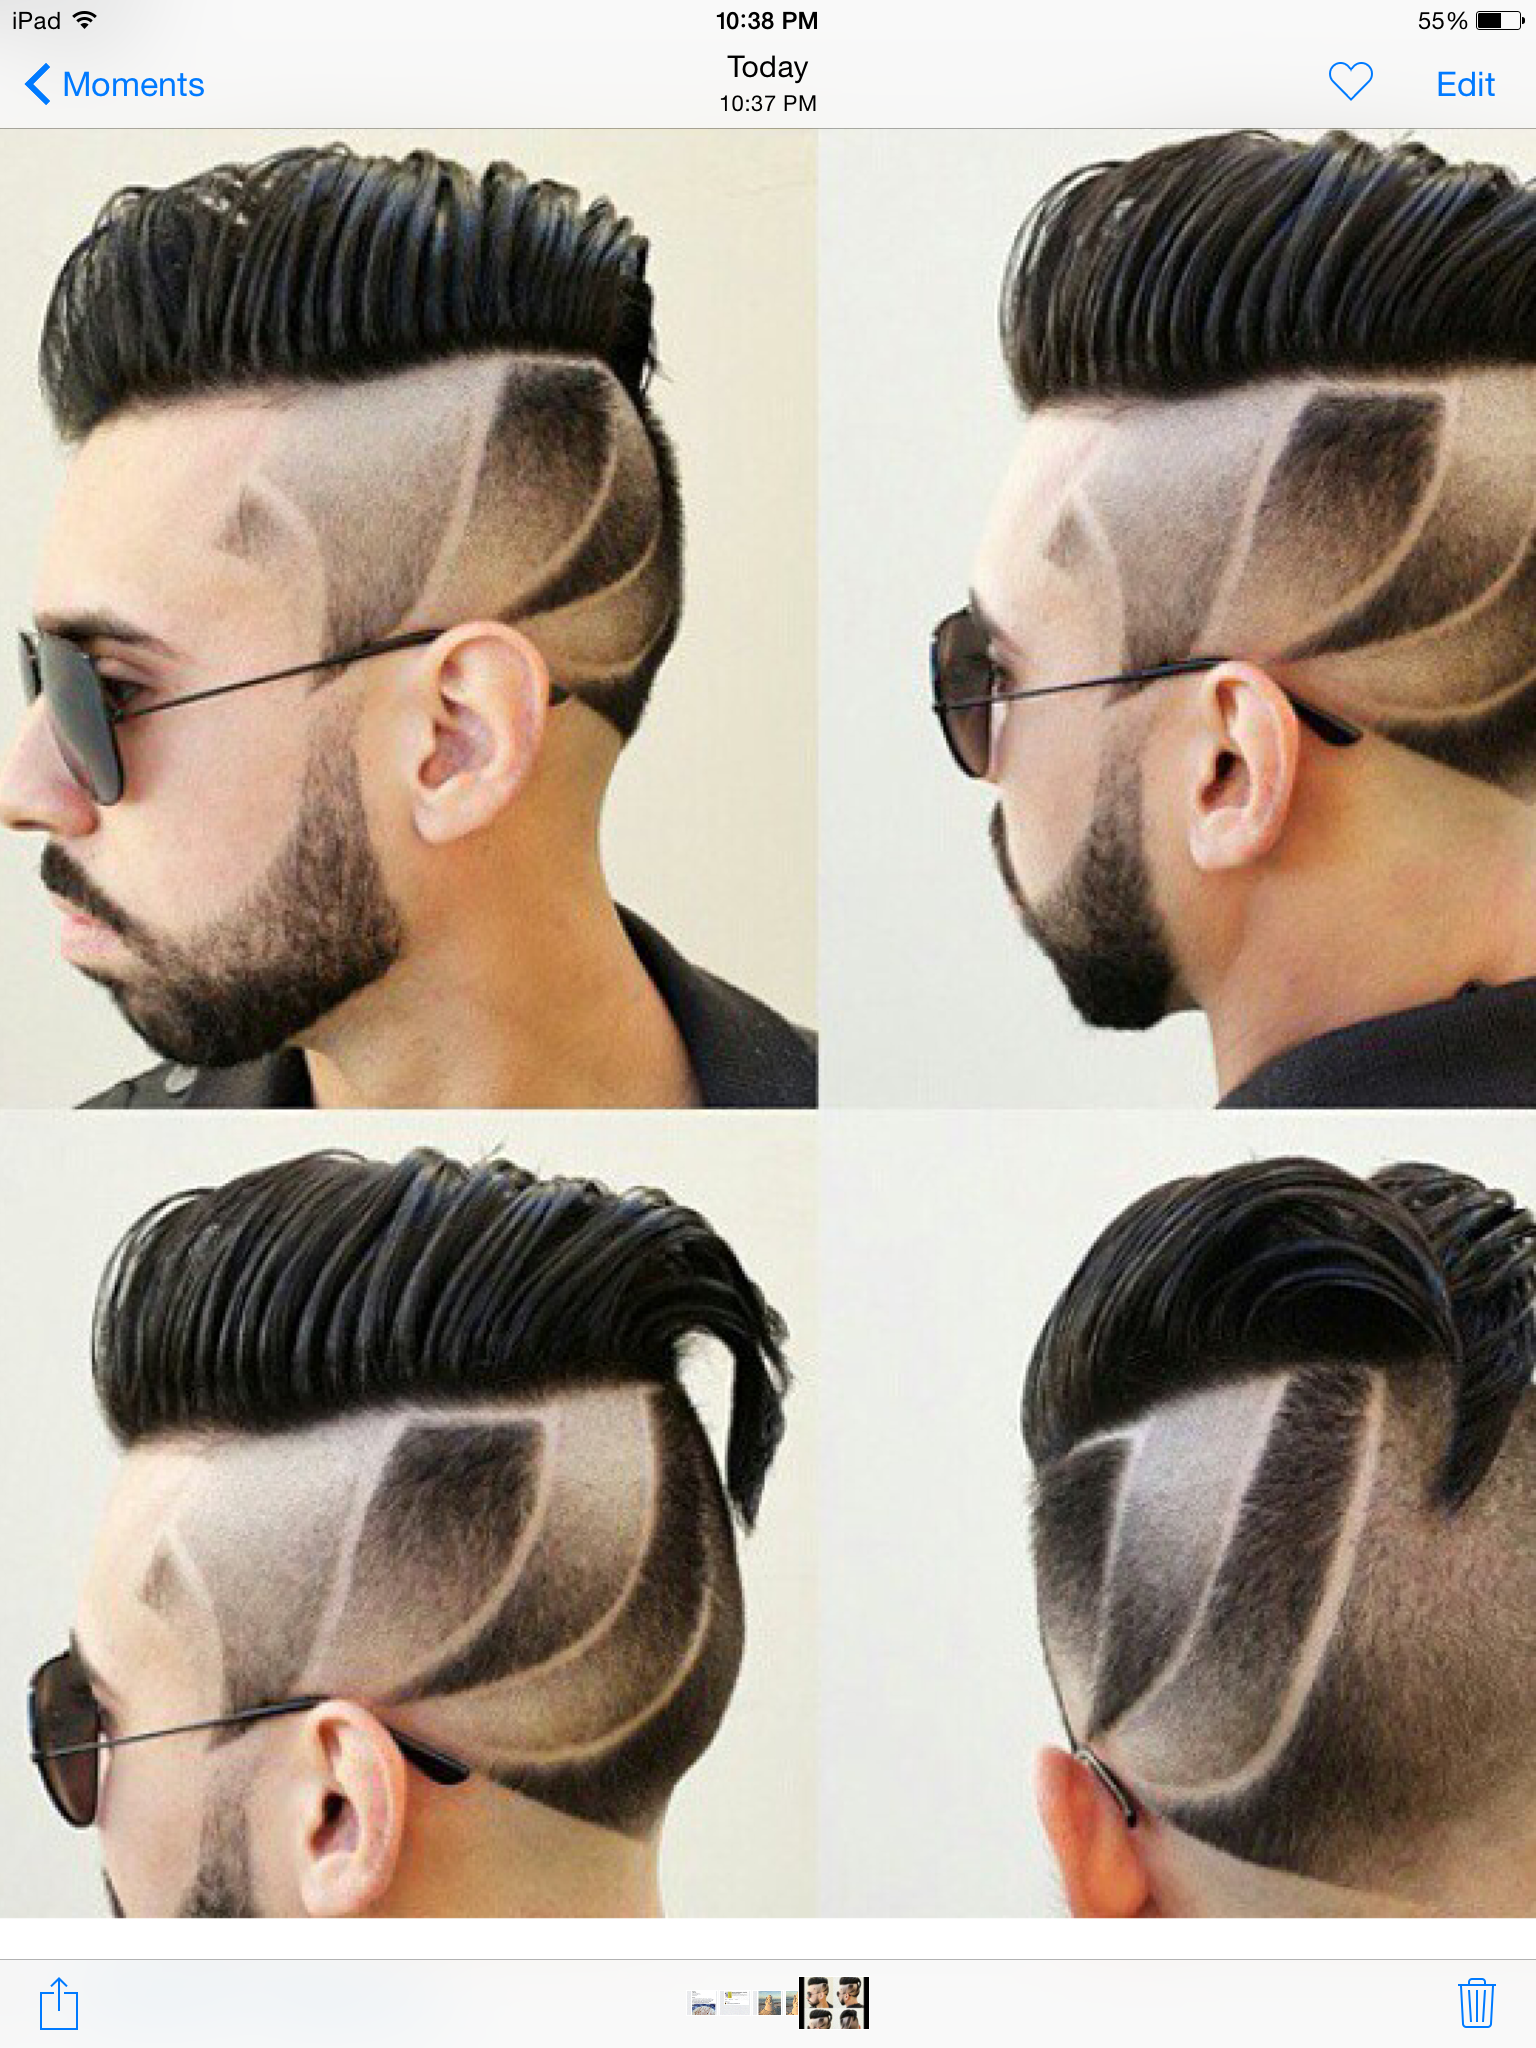 Ium getting this next time i get my hair cut fuck it dégrade marie